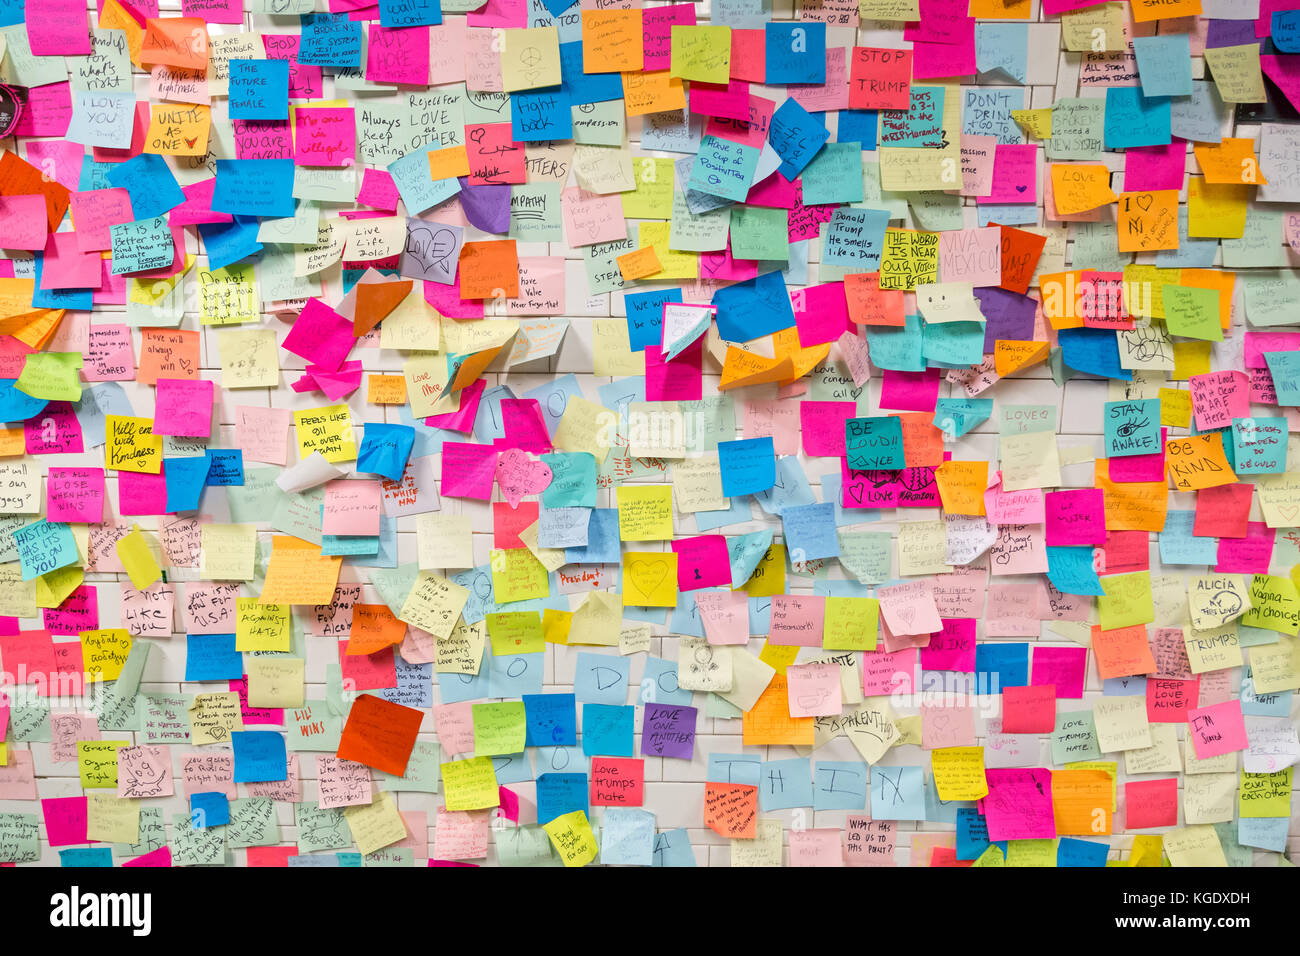 Sticky post-it notes in NYC subway station - Stock Image